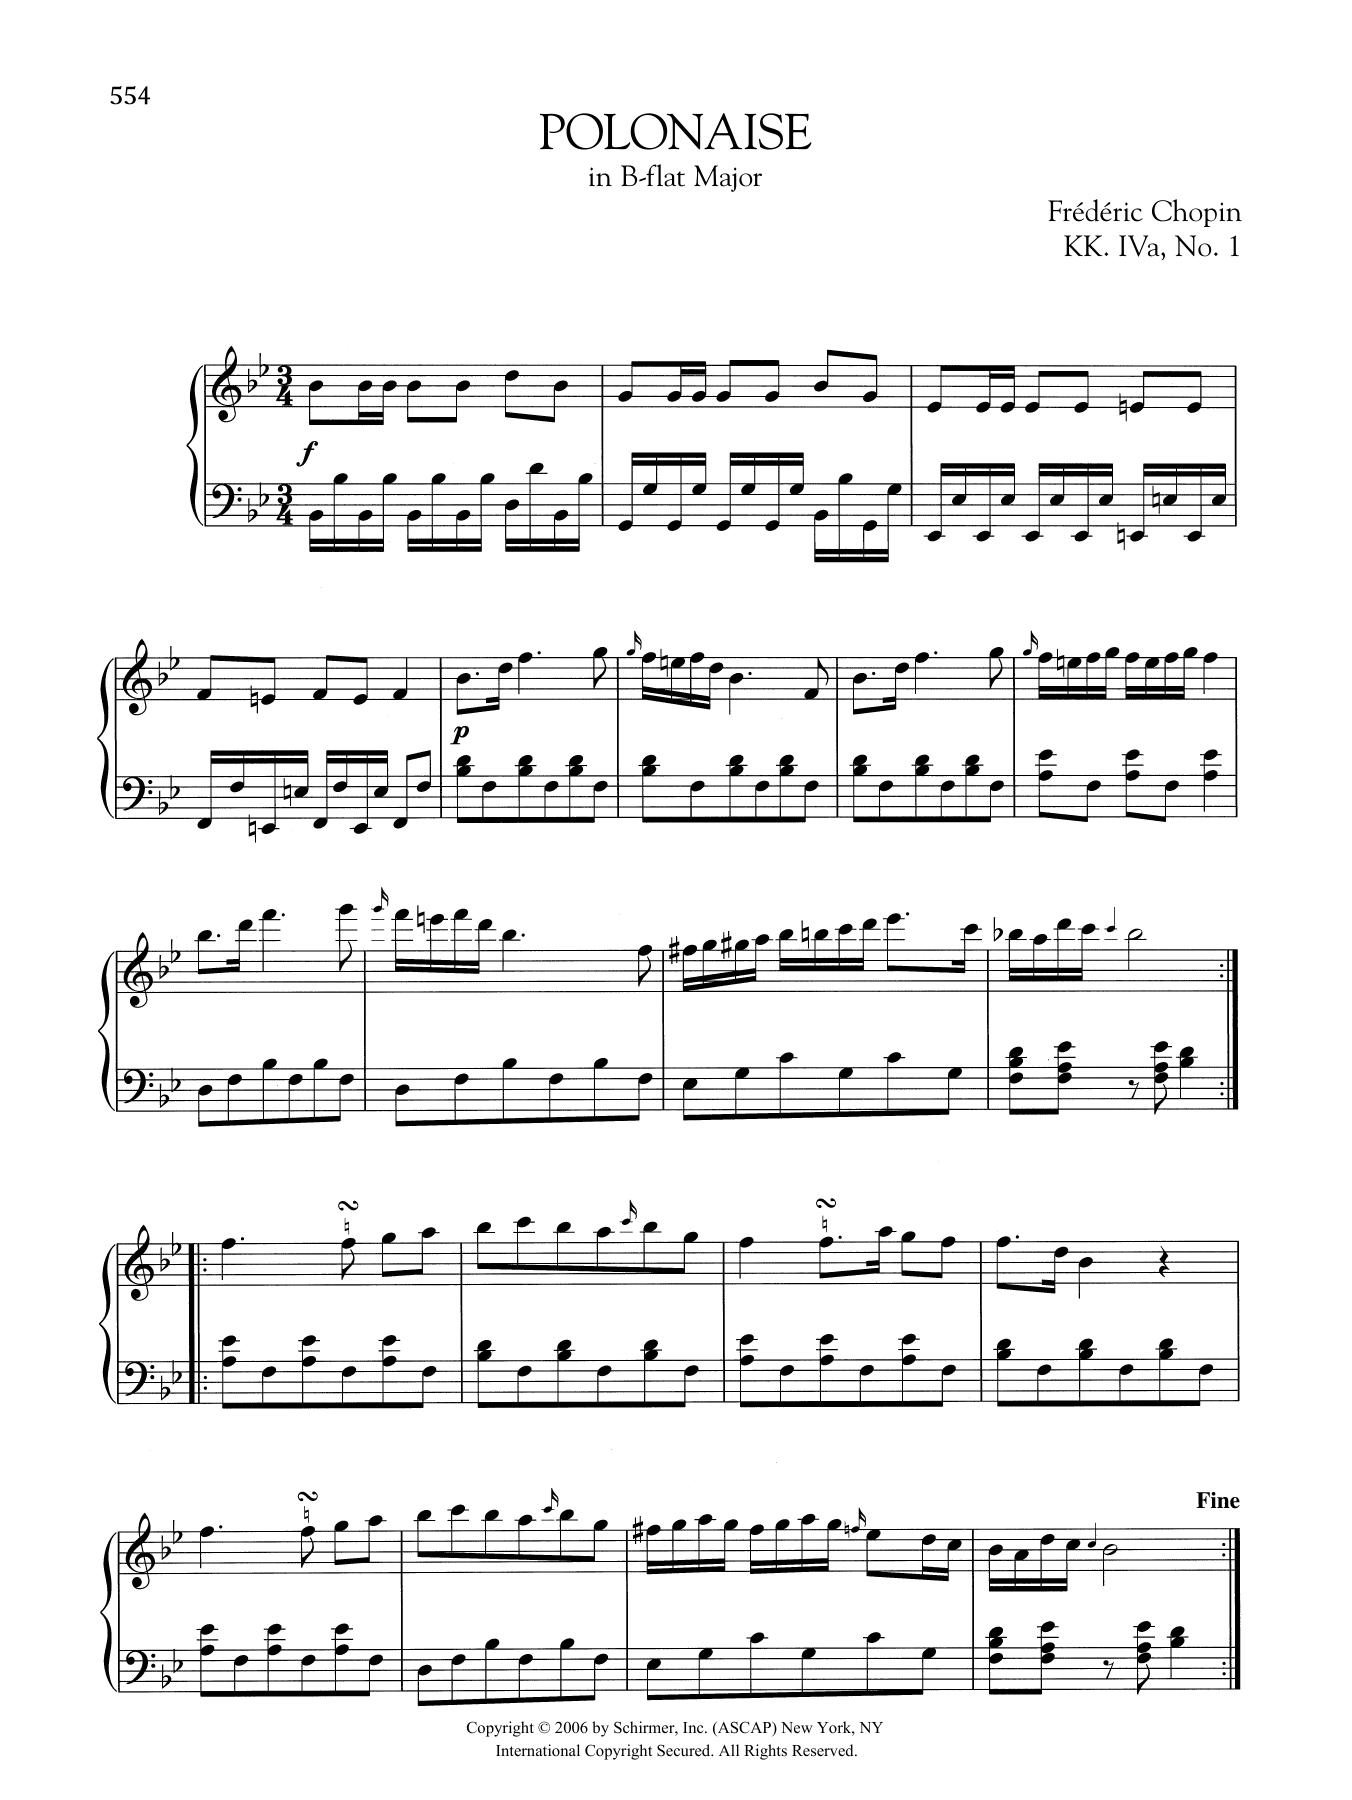 Polonaise in B-flat Major, KK. IVa, No. 1